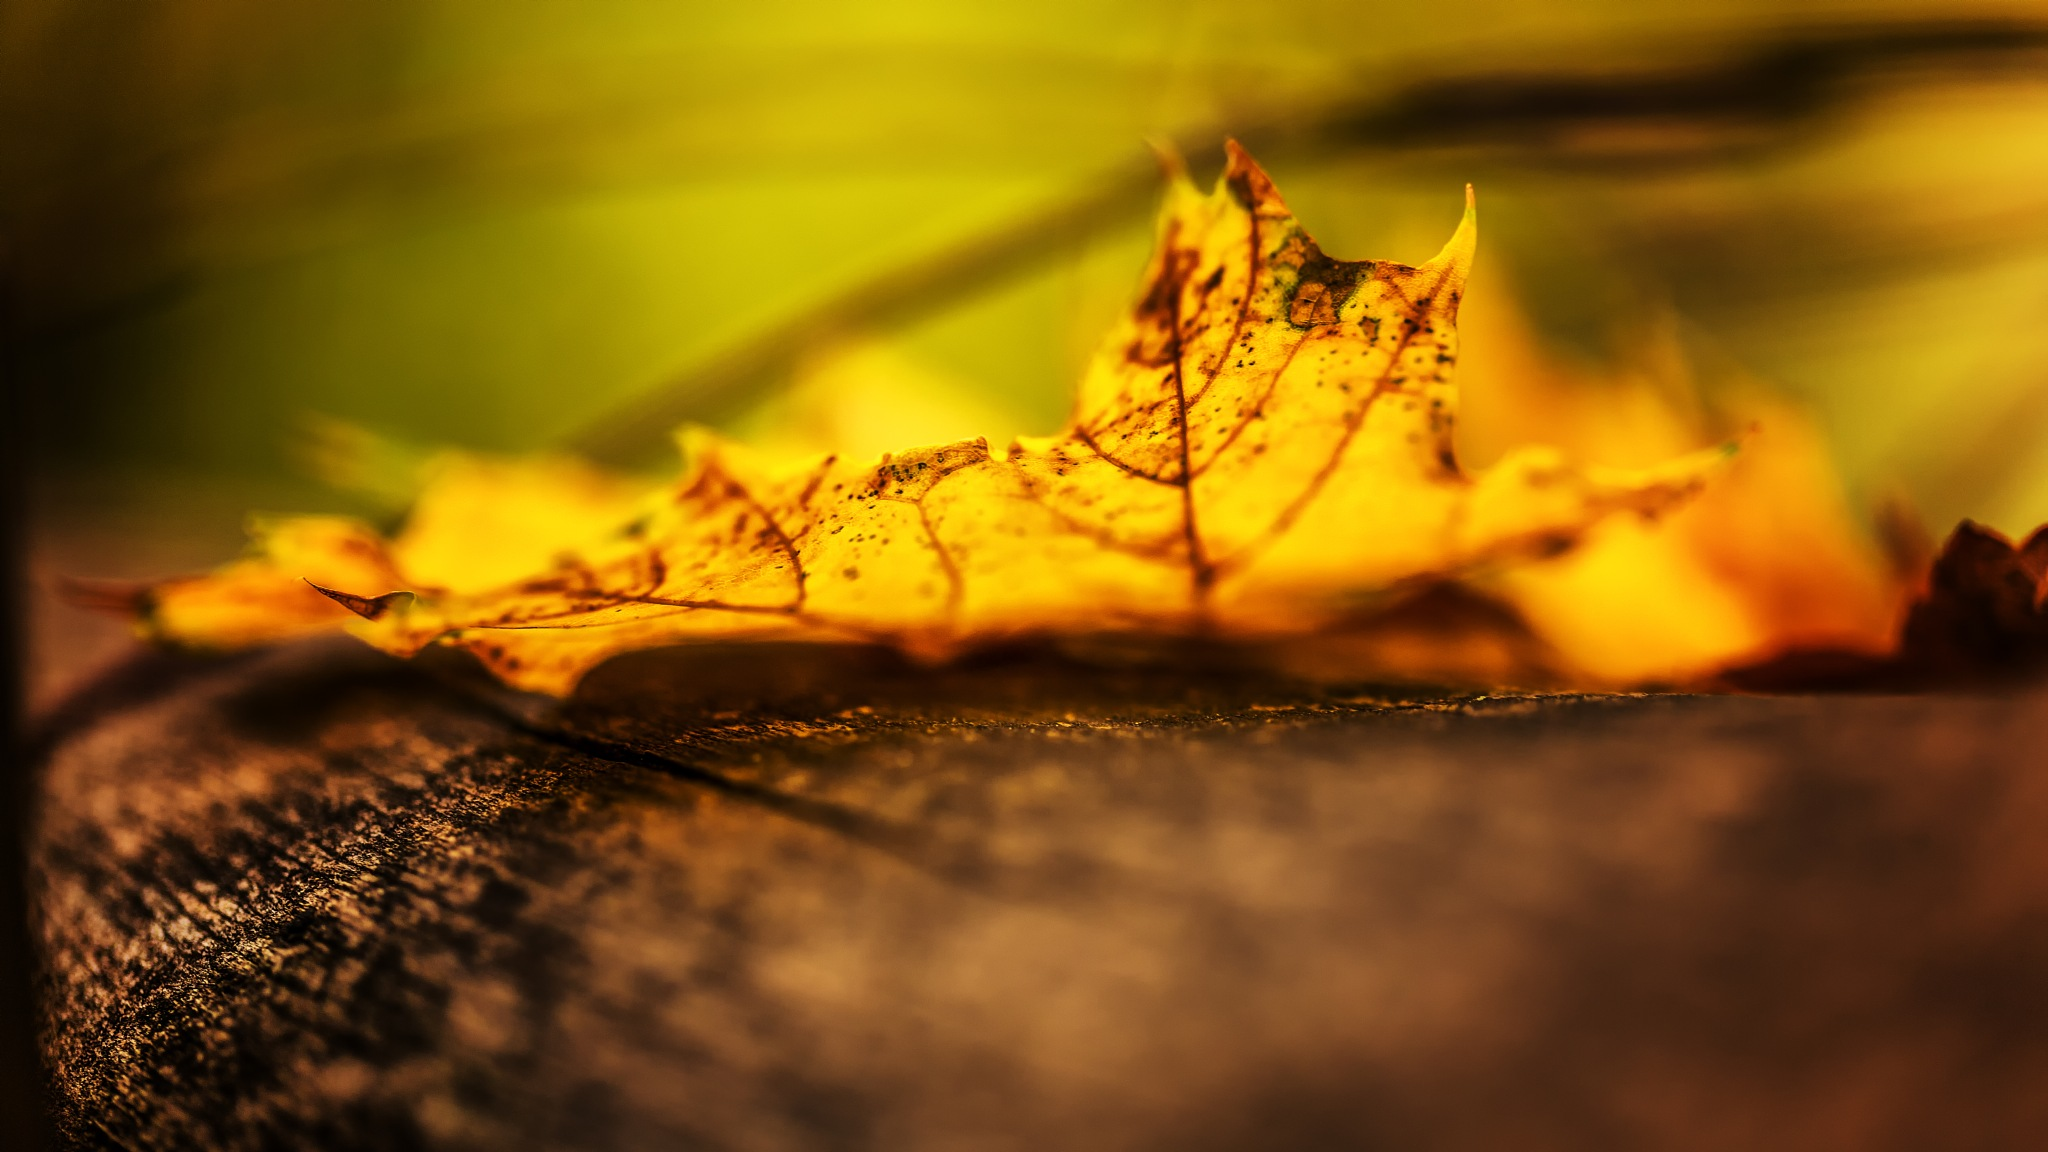 Autumn is here! by Hameed S